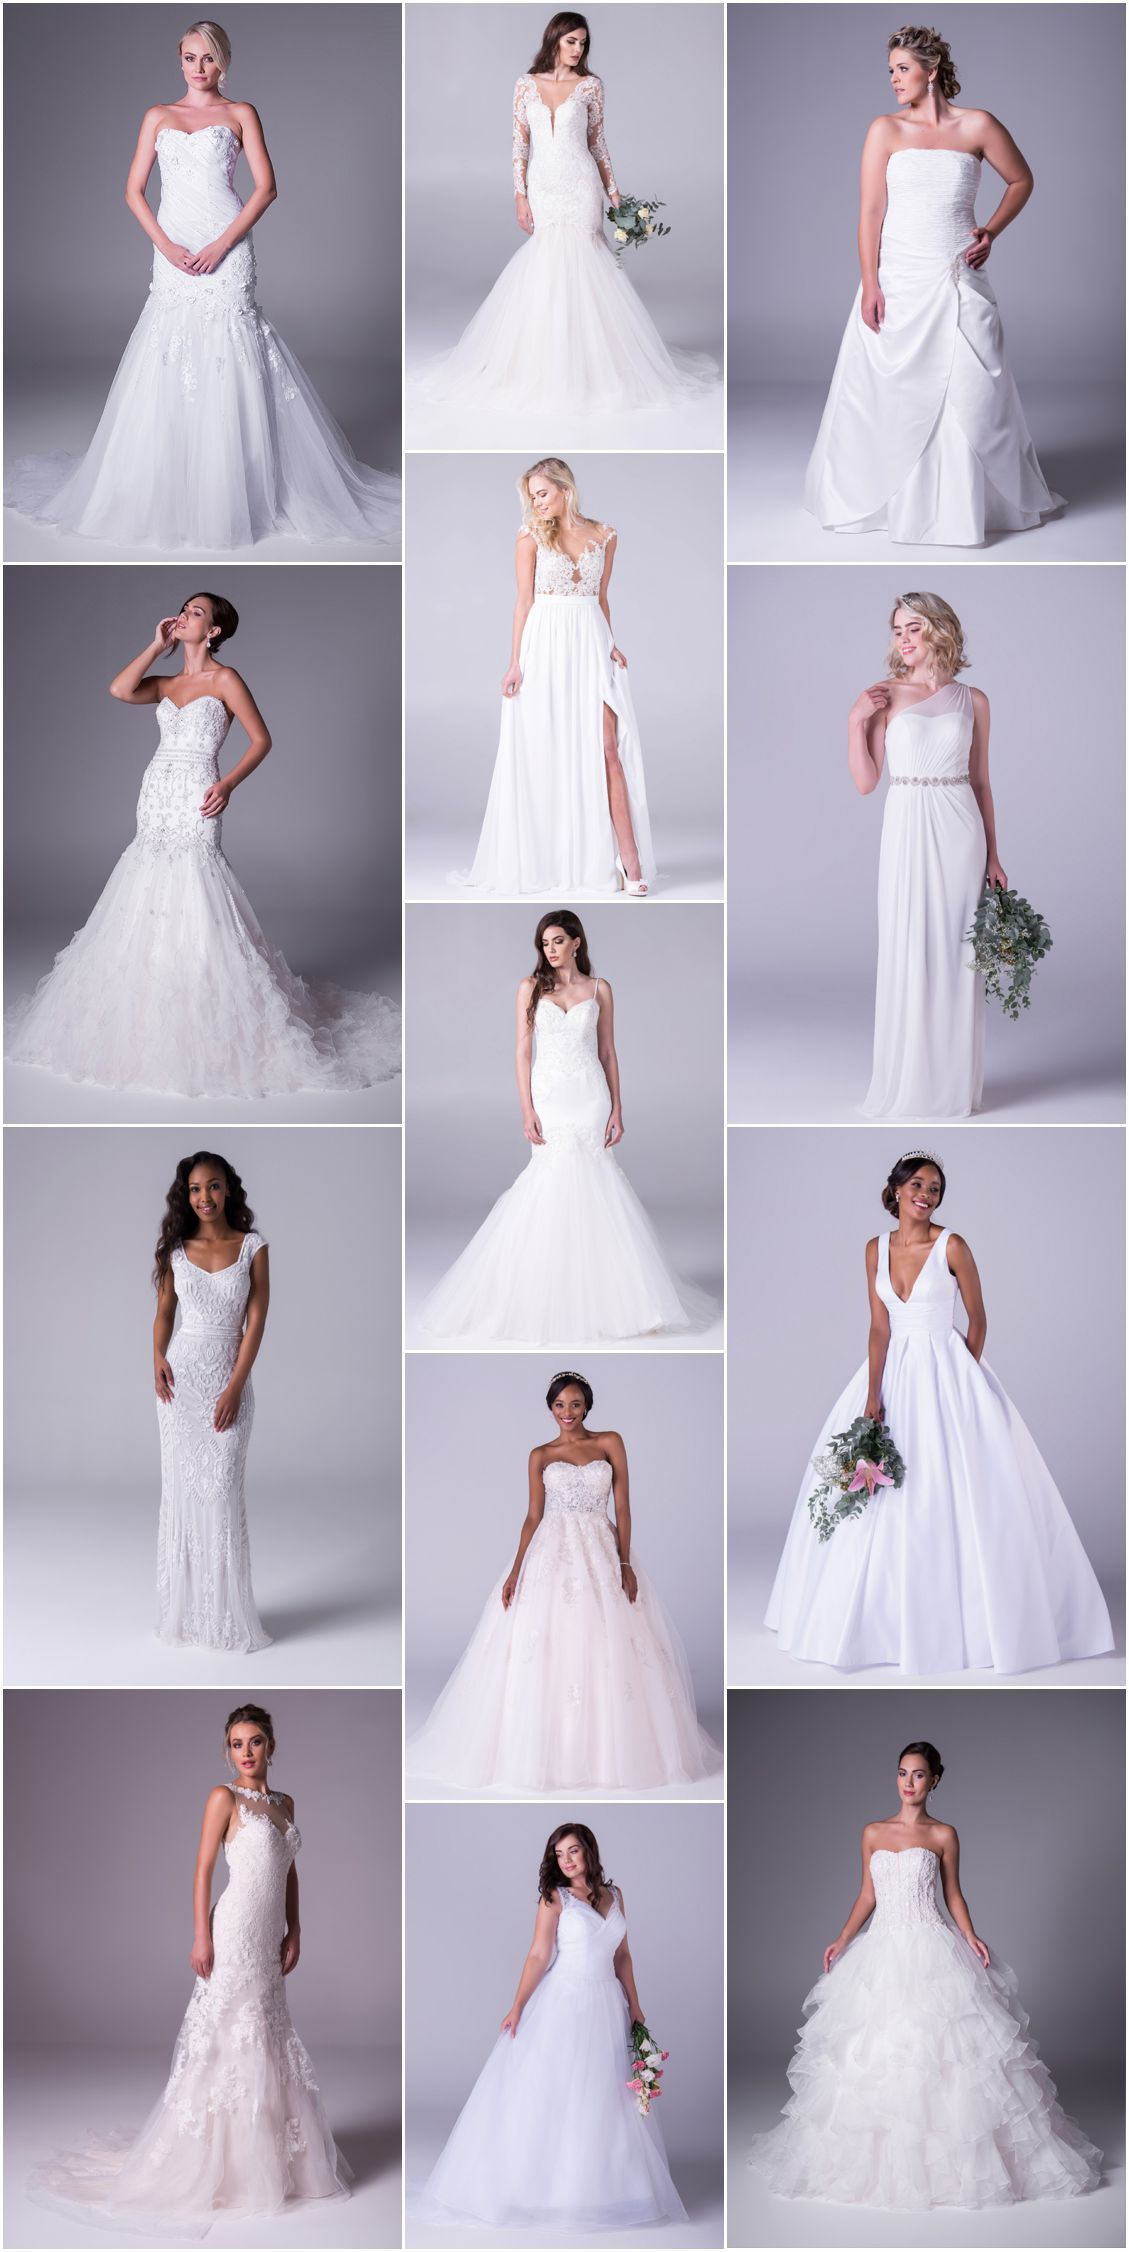 Best Wedding Dresses For Apple Shaped Body - raveitsafe